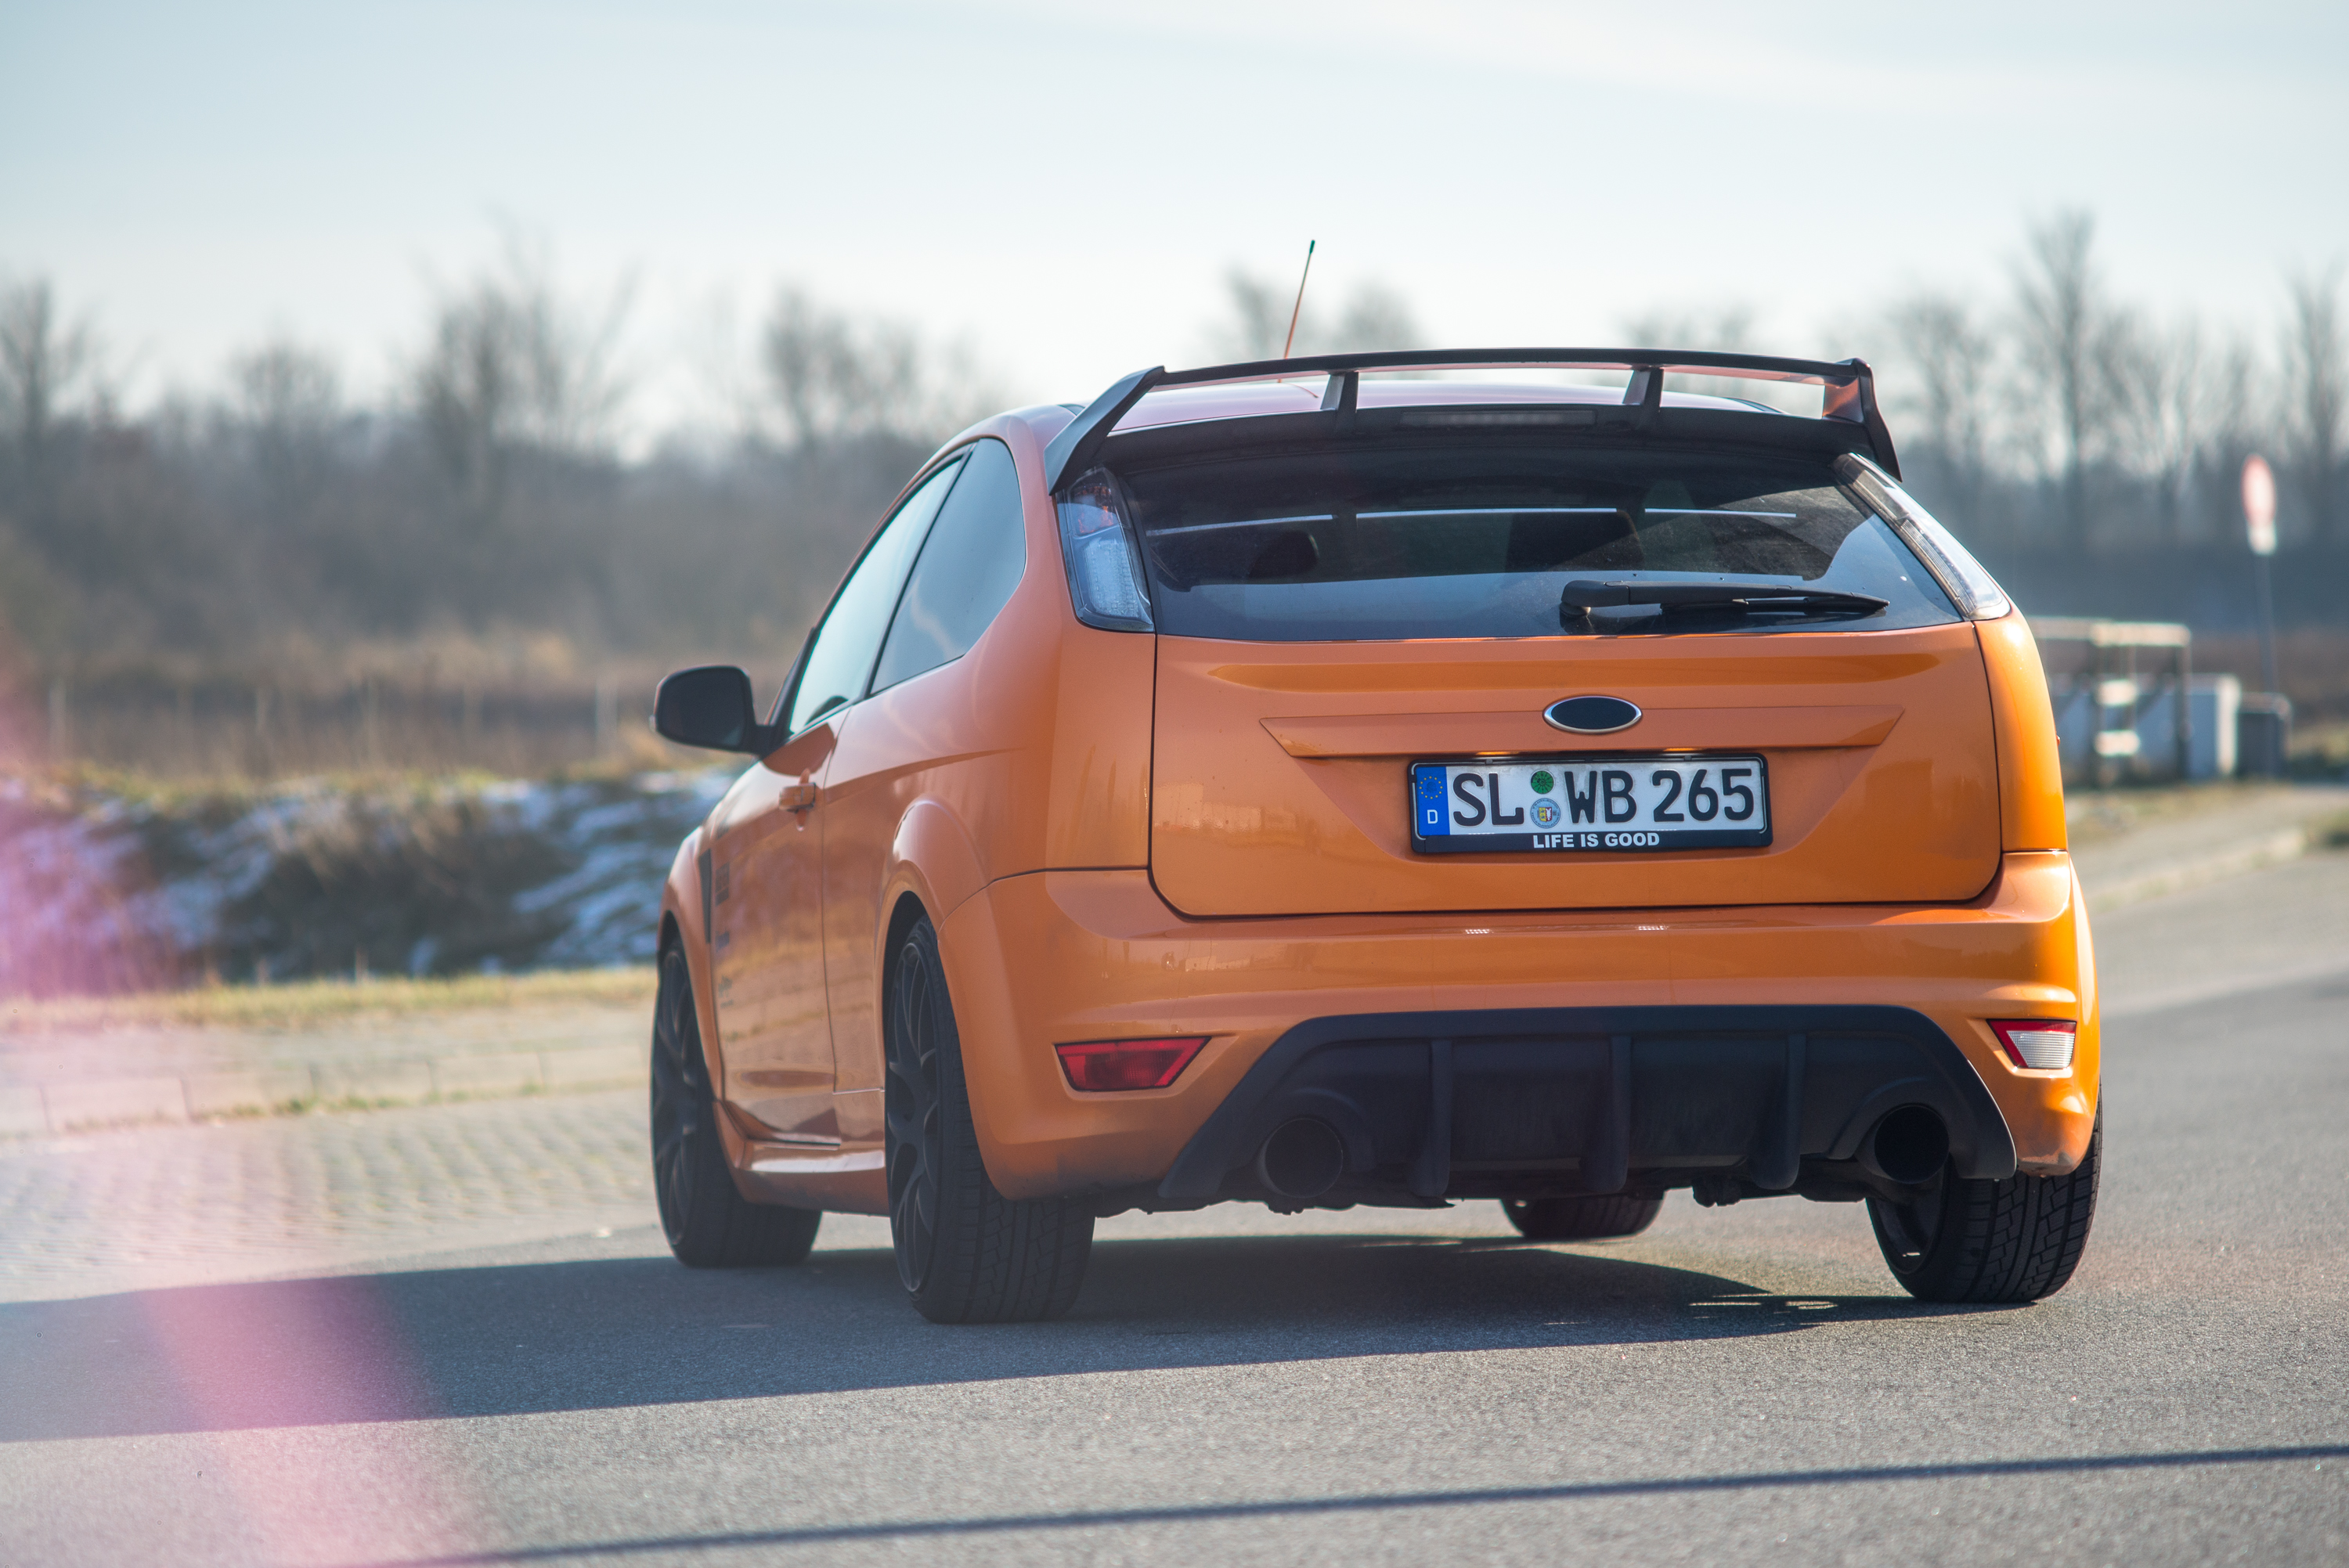 ford focus st mk tuning life  good df automotive